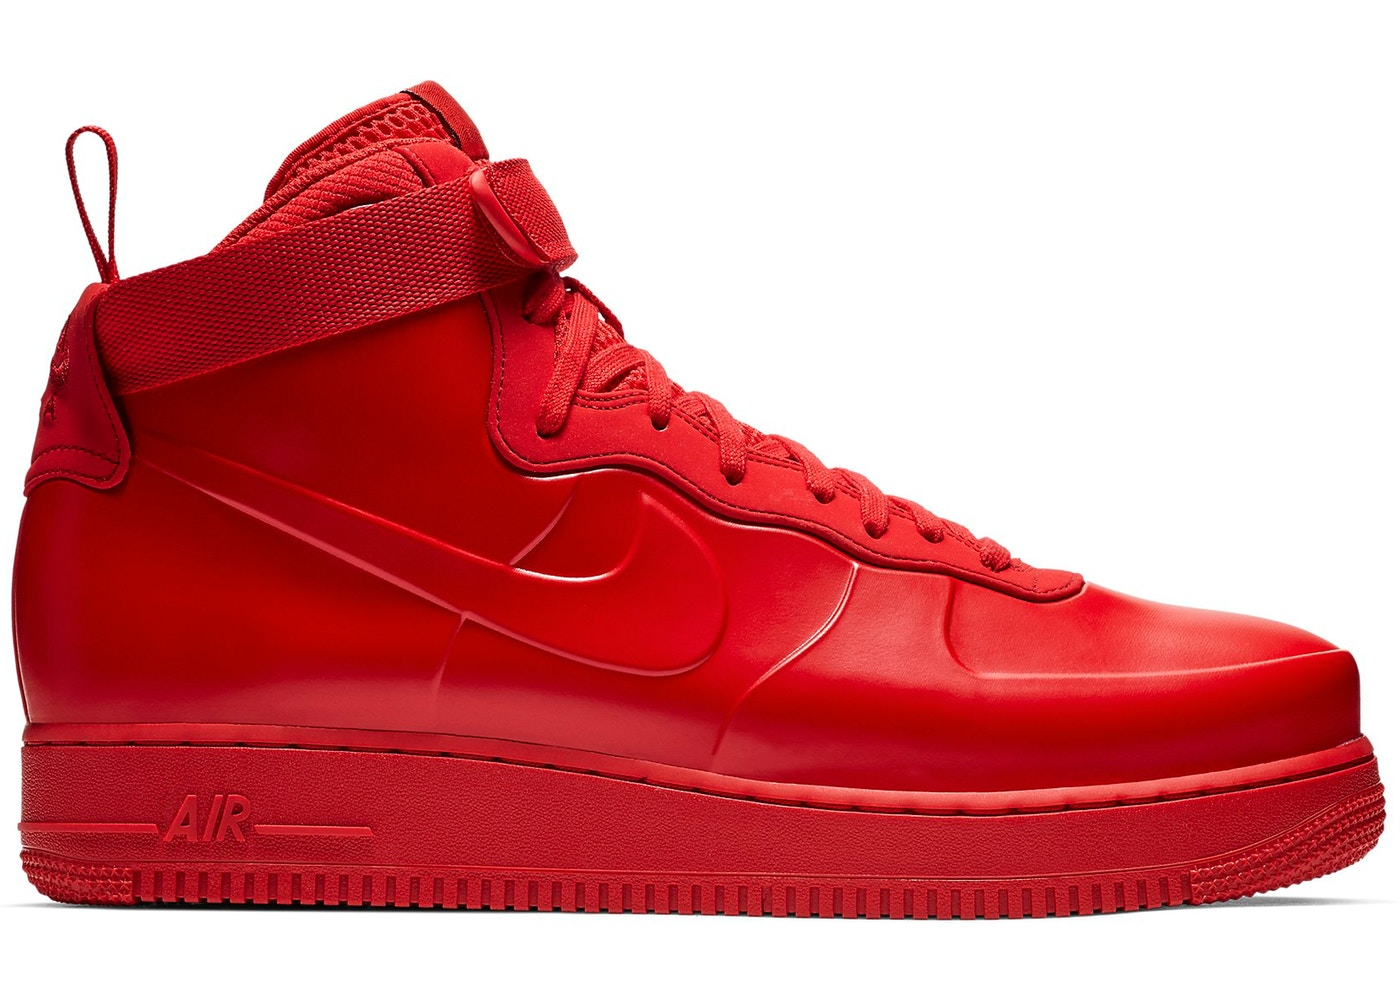 timeless design 4af6a a5c63 Buy Nike Air Force 1 Shoes   Deadstock Sneakers